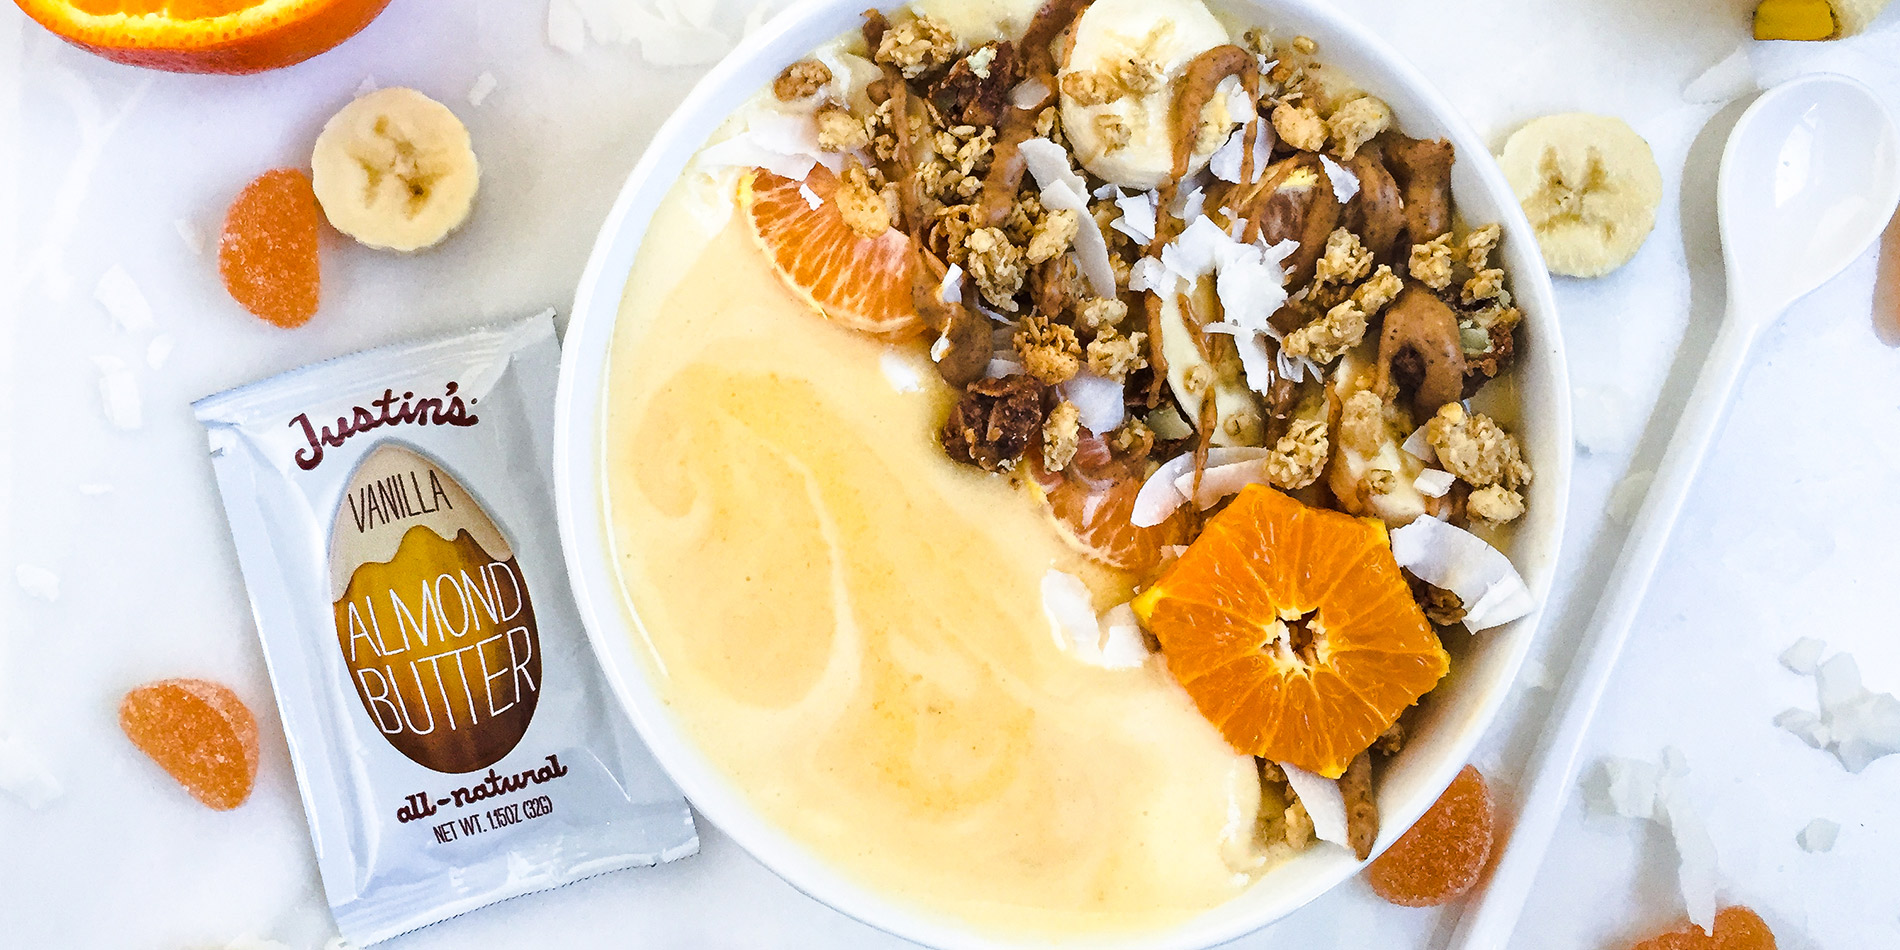 Orange Creamsicle Smoothie Bowl with a sliced orange & banana, with scattered banana slices, orange jelly, and coconut flakes